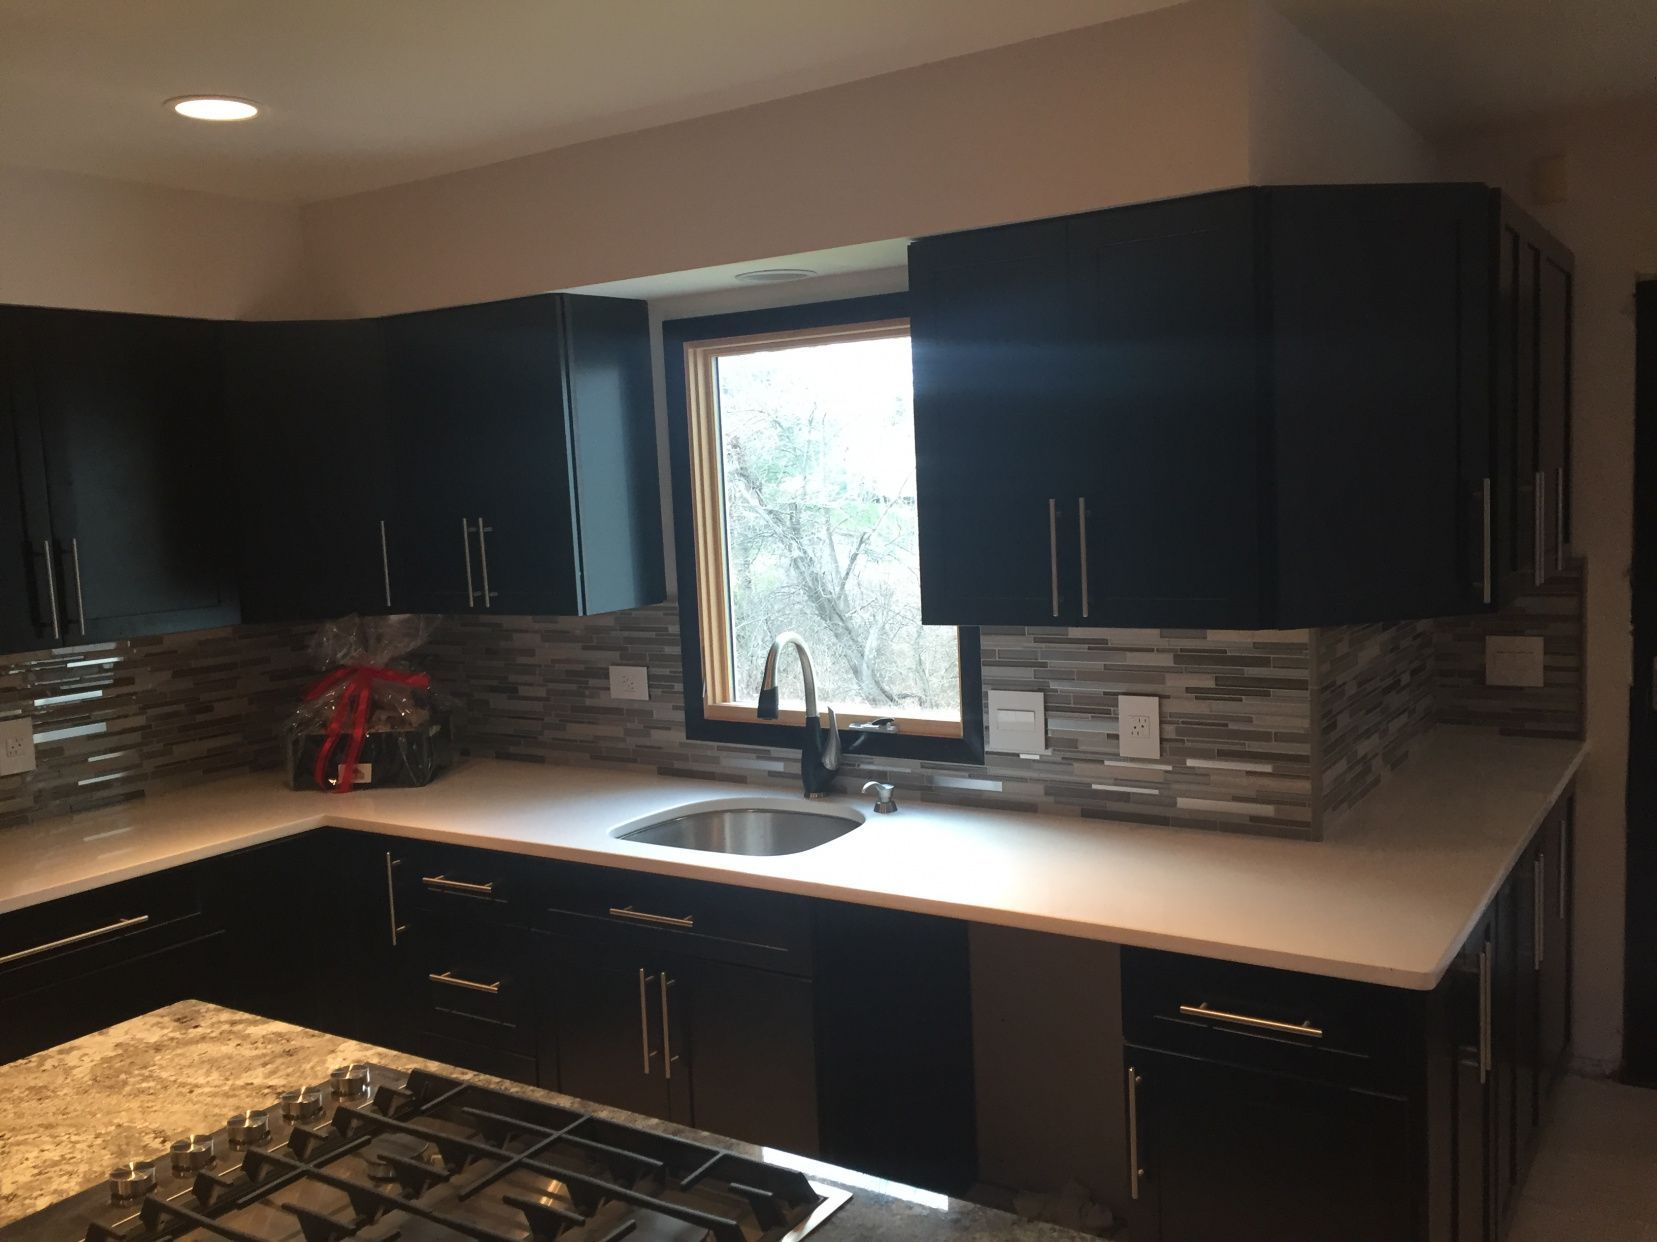 2019 How Much Is Quartz Countertops Installed   Small Kitchen Island Ideas  With Seating Check More